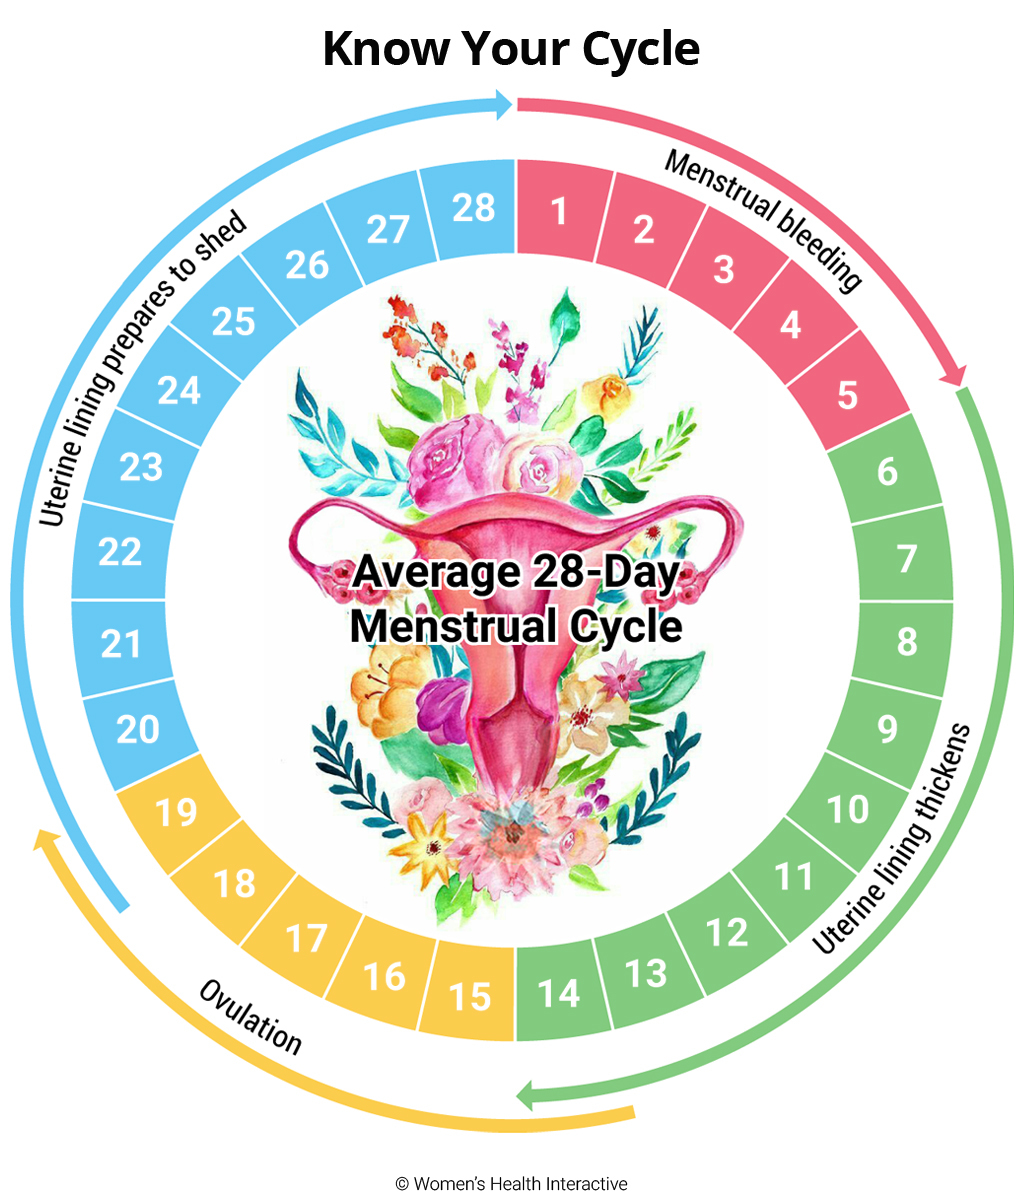 Infographic Illustrating A Typical 28 Day Menstrual Cycle